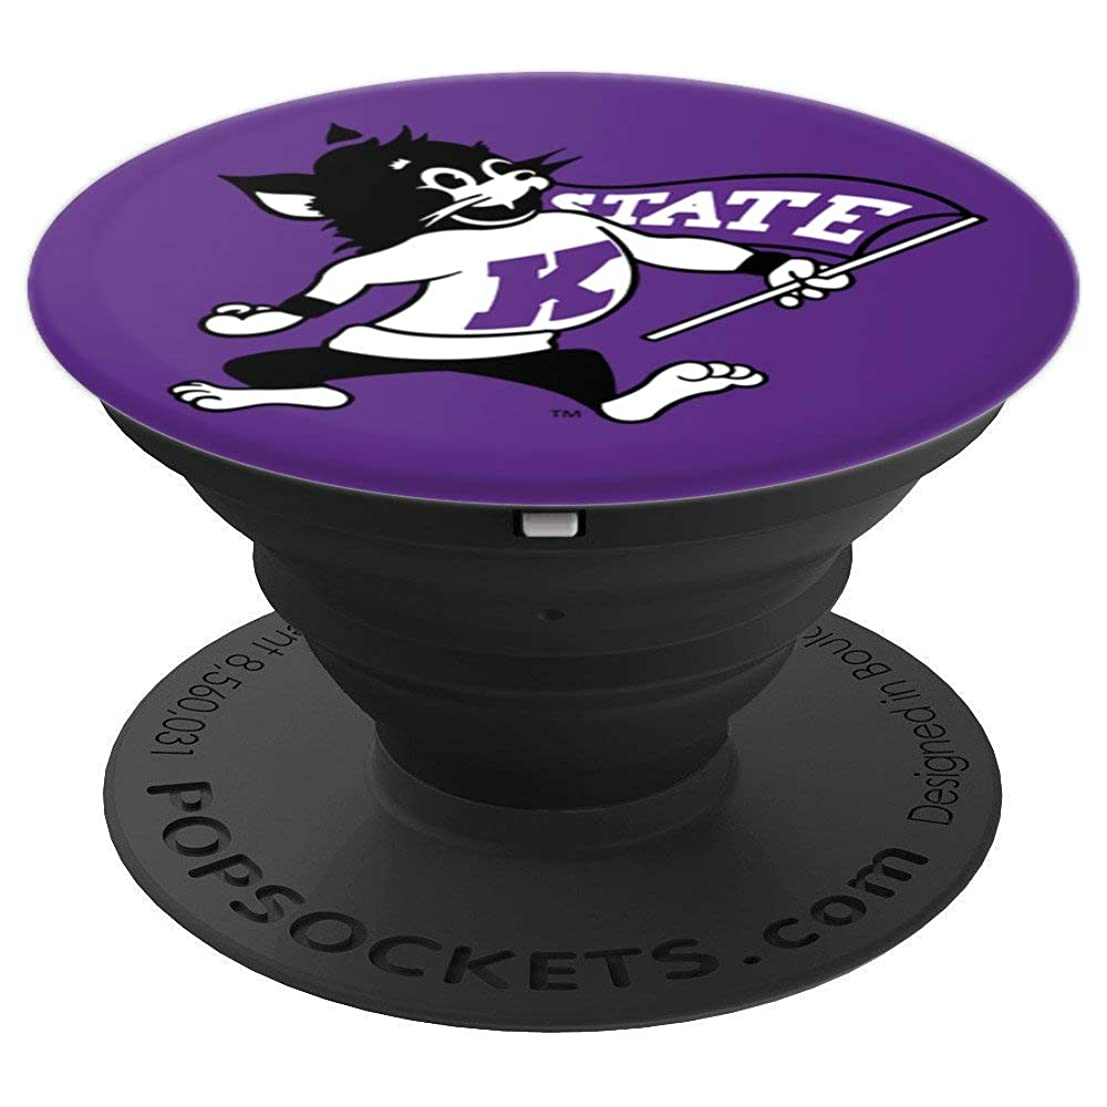 Kansas State University Collapsible Grip & Stand RYKLSU06 - PopSockets Grip and Stand for Phones and Tablets